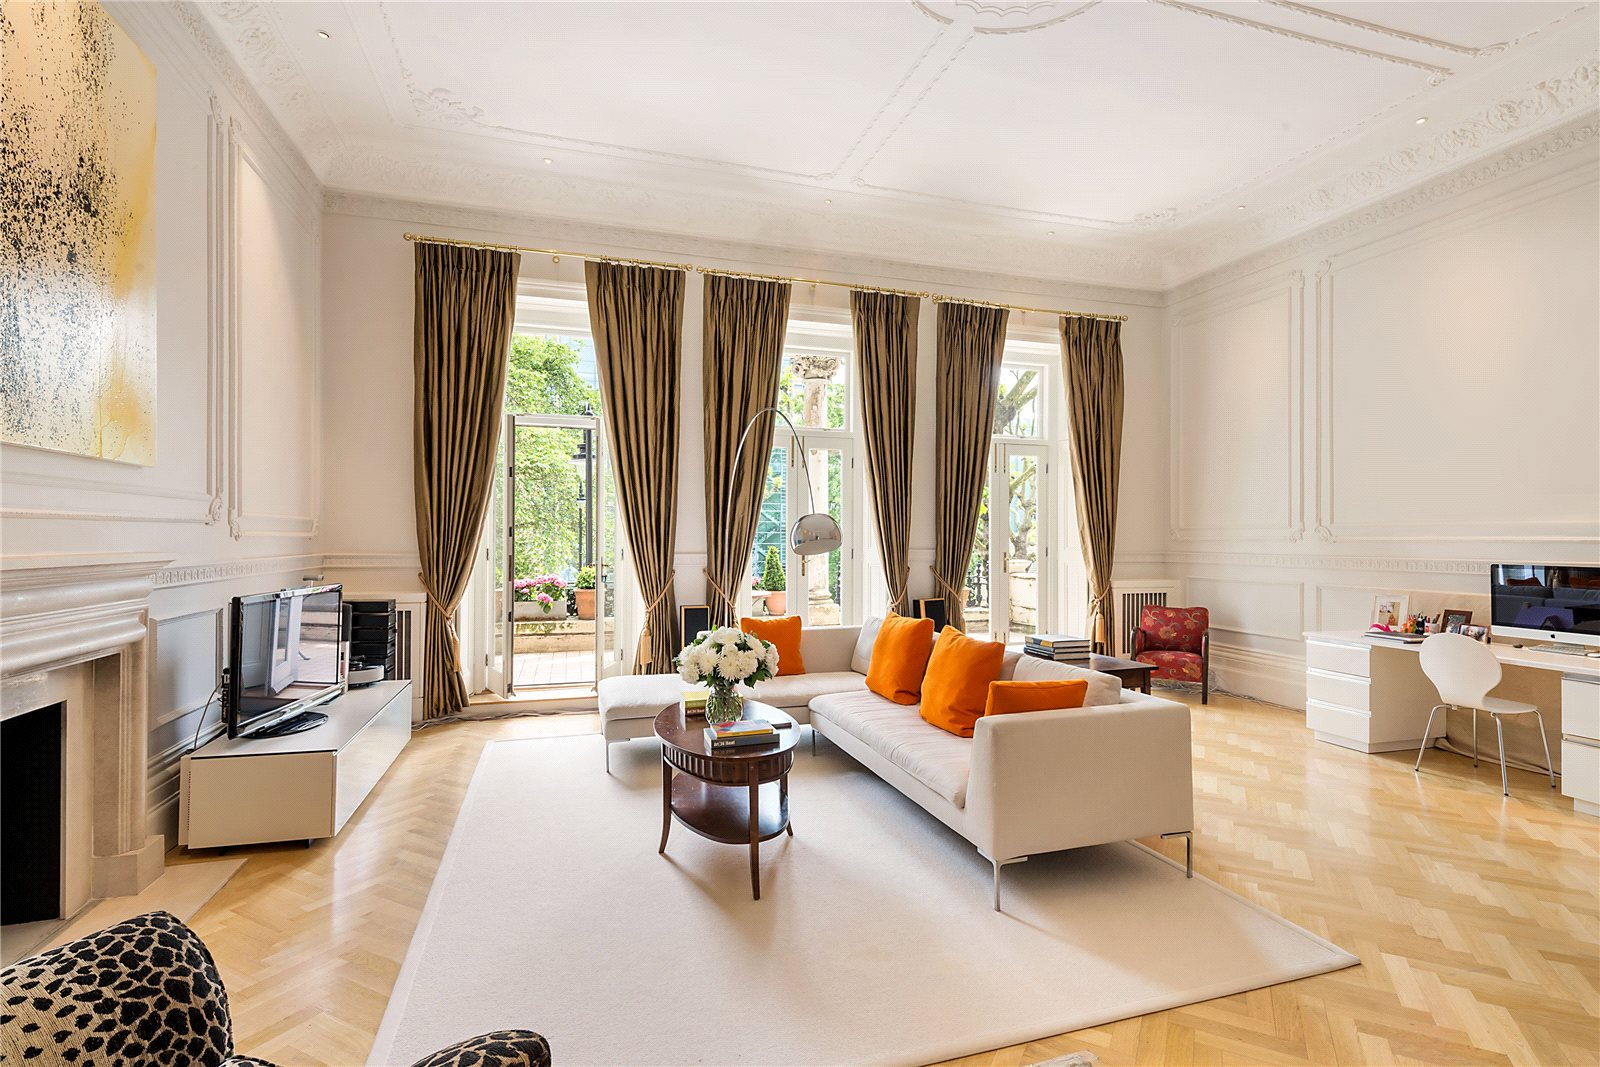 Apartamento por un Venta en Queen's Gate, South Kensington, London, SW7 South Kensington, London, Inglaterra